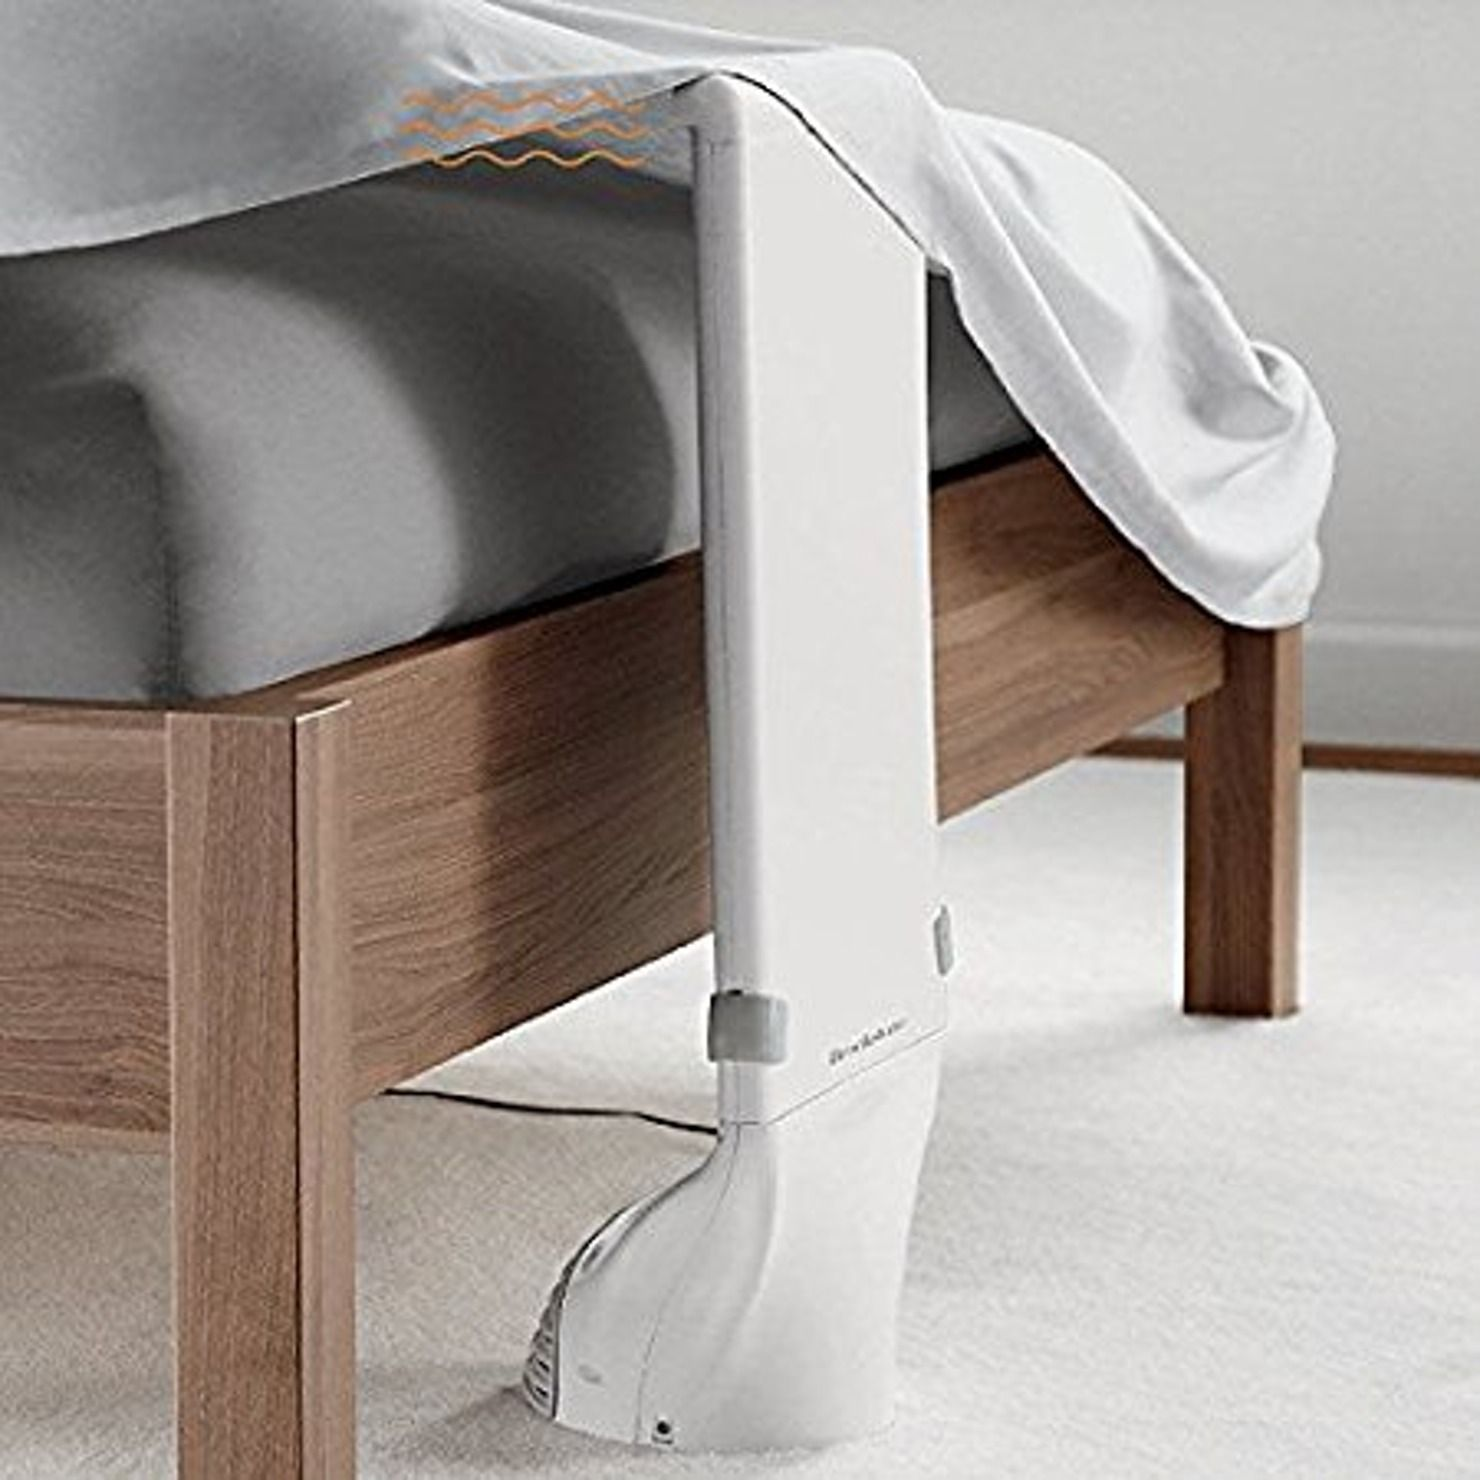 How To Make Your Bed More Comfortable Stylish Bed Fan Bedroom